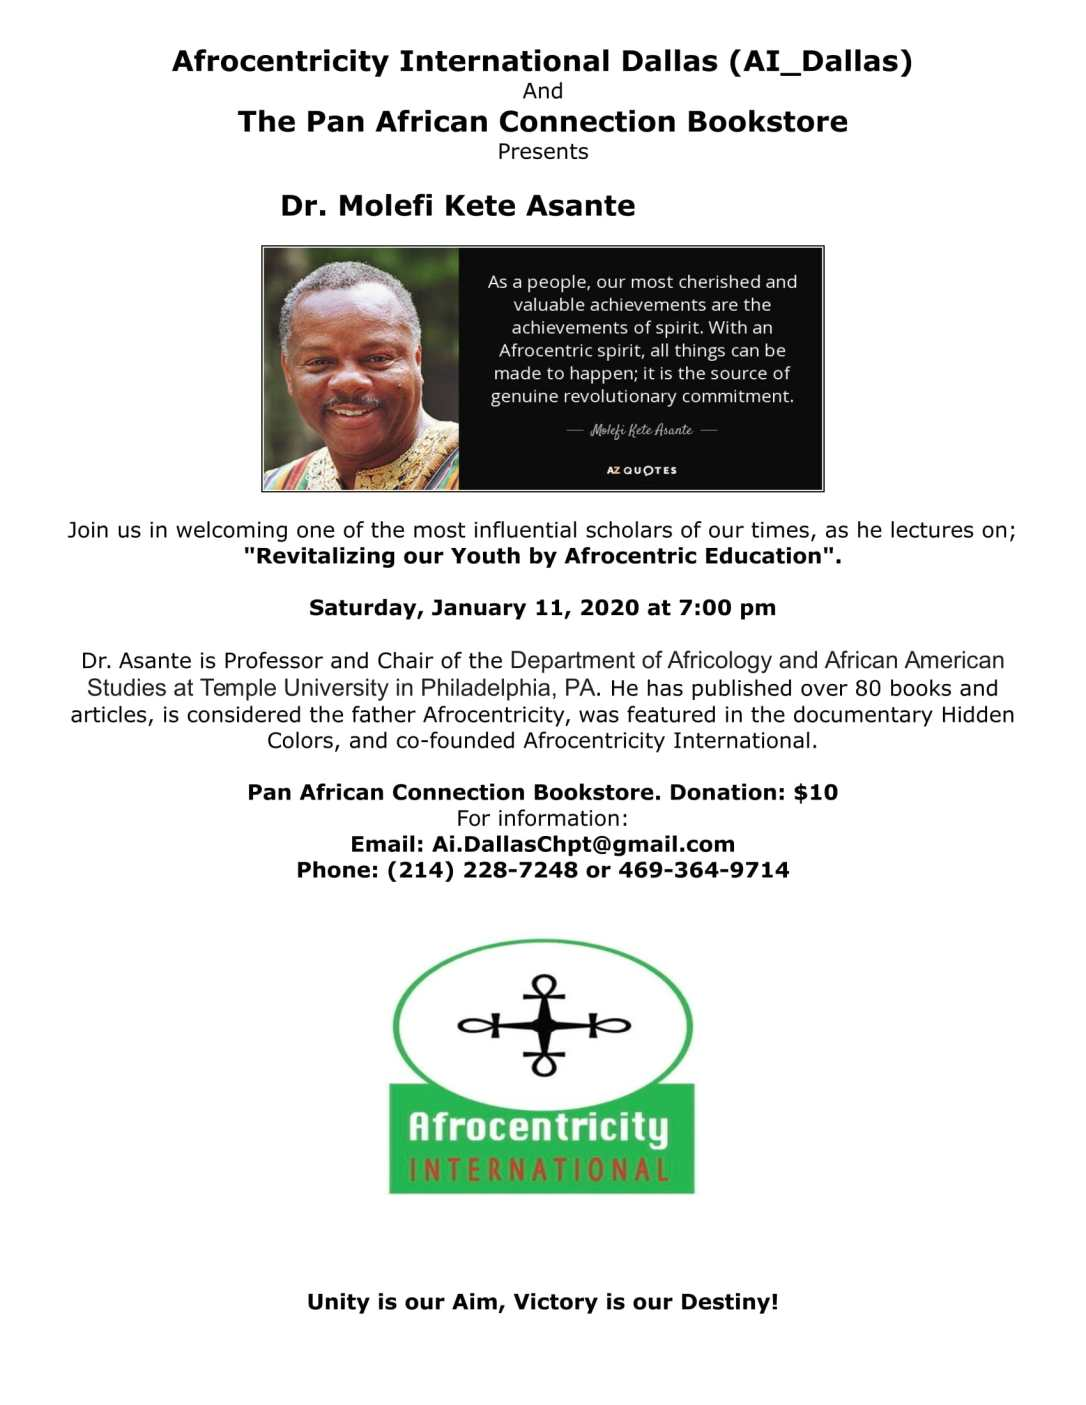 AI Dallas Presents Dr Molefi Ashante FLYER revised-1